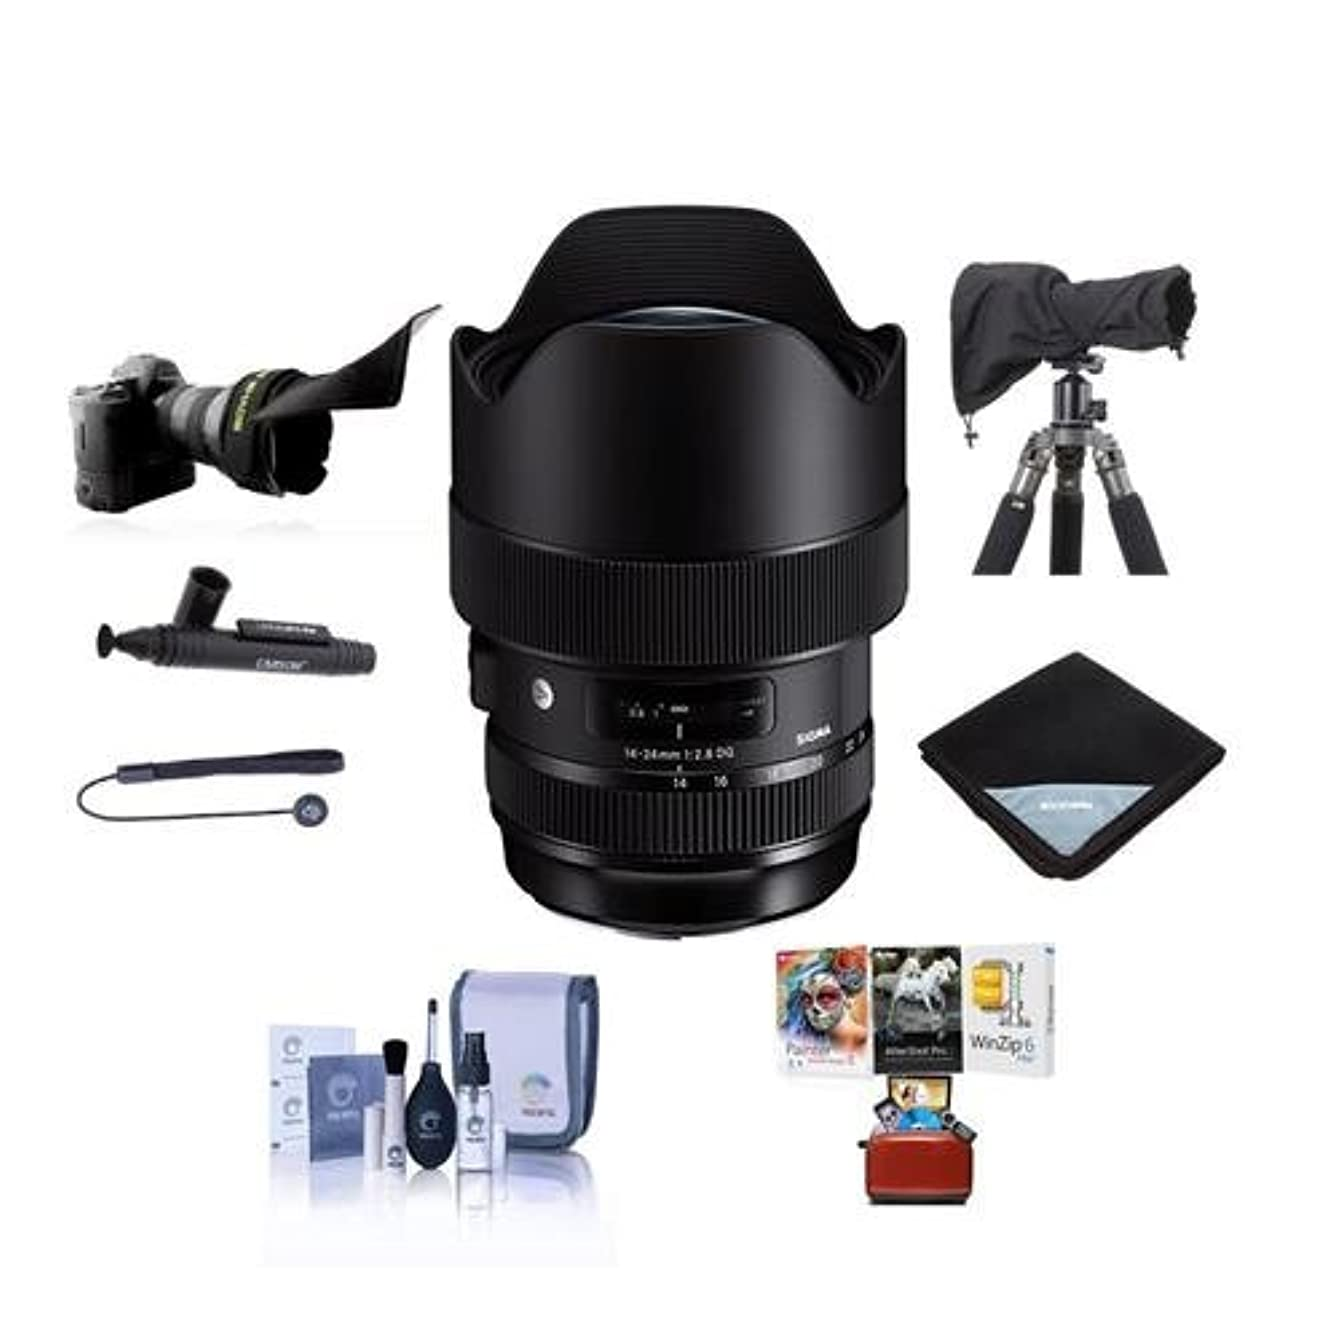 Sigma 14-24mm f/2.8 DG HSM Art Wide-Angle Zoom Lens for Nikon DSLR Cameras - Bundle with Lens Wrap, LensCoat Raincoat Rain Sleeve Black, Cleaning Kit, Flex Lens Shade, Mac Software Package, and More